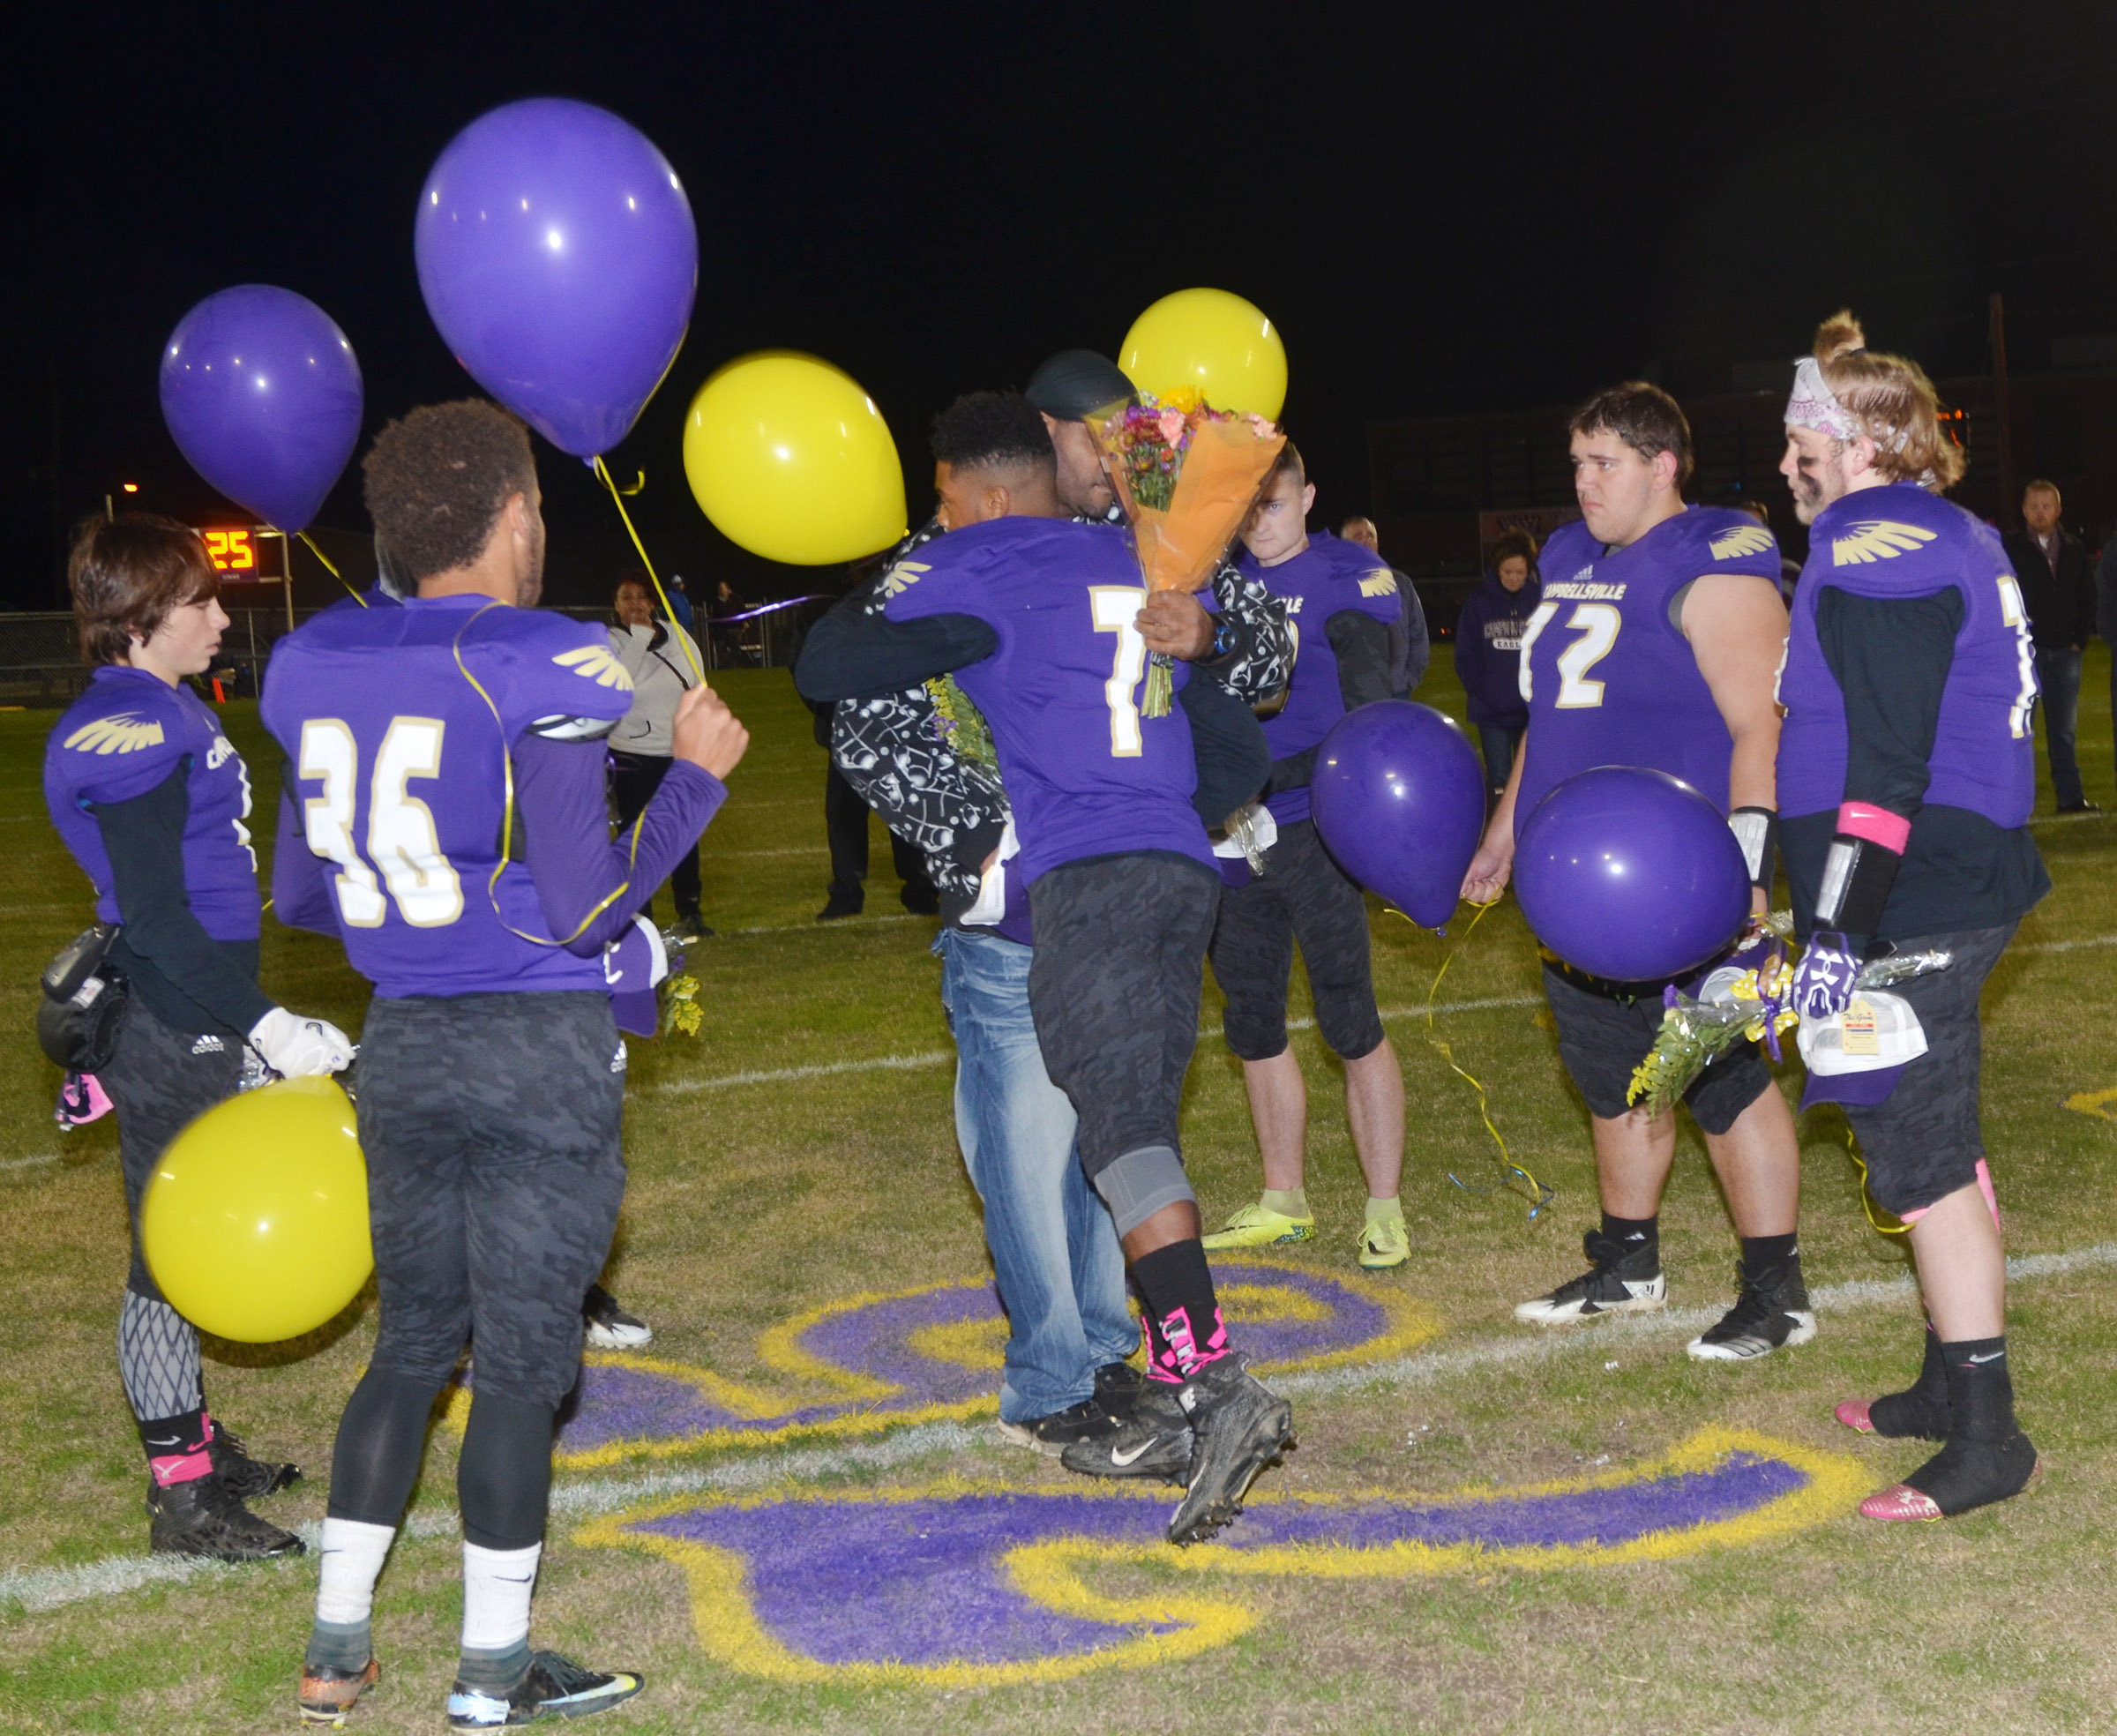 CHS senior players honor Cameron Smith, who died in 2013 and would have been a senior at CHS this year, by releasing purple and gold balloons. Smith's father William, center, attended the ceremony.